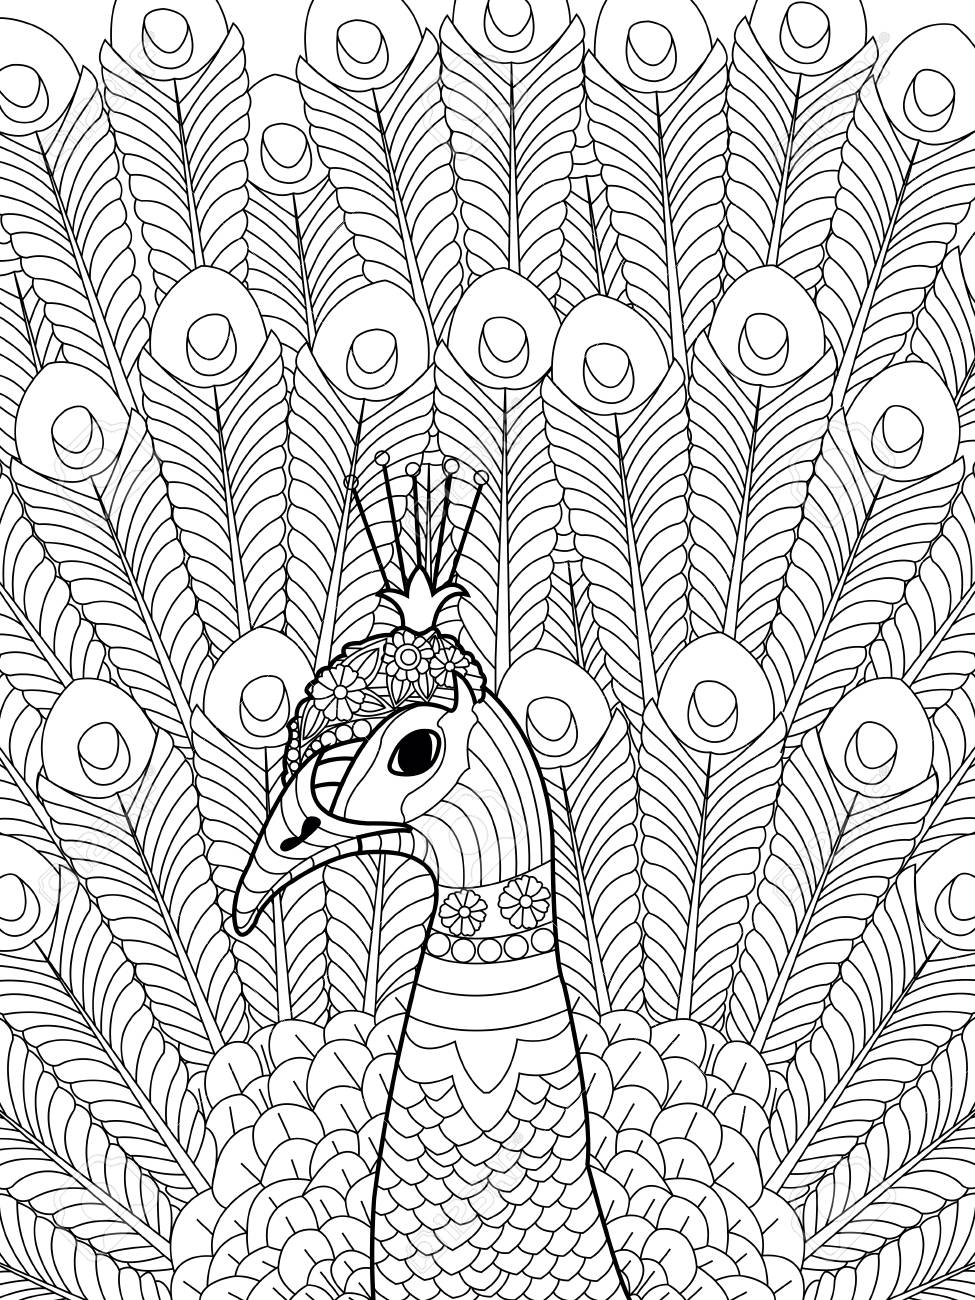 - Peacock Coloring Book For Adults Vector Illustration. Anti-stress